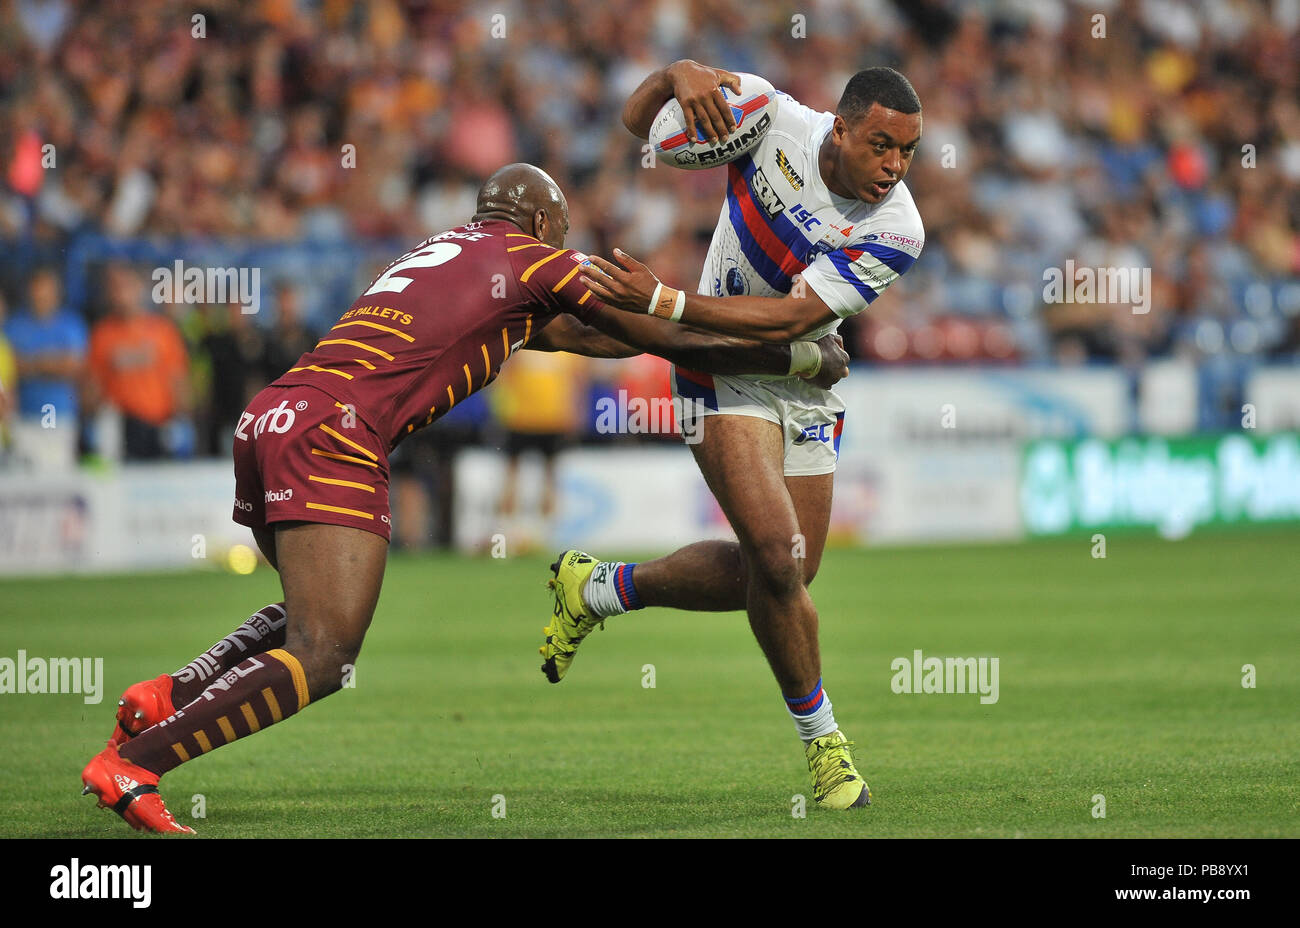 Wakefield, UK. 27th July 2018. John Smiths Stadium, Huddersfield, UK. 27th July, 2018. Betfred Super League Rugby League between Huddersfield Giants and Wakefield Trinity; Reece Lyne of Wakefield Trinity shrugs of Huddersfield Michael Lawrence.  Dean Williams Credit: Dean Williams/Alamy Live News - Stock Image